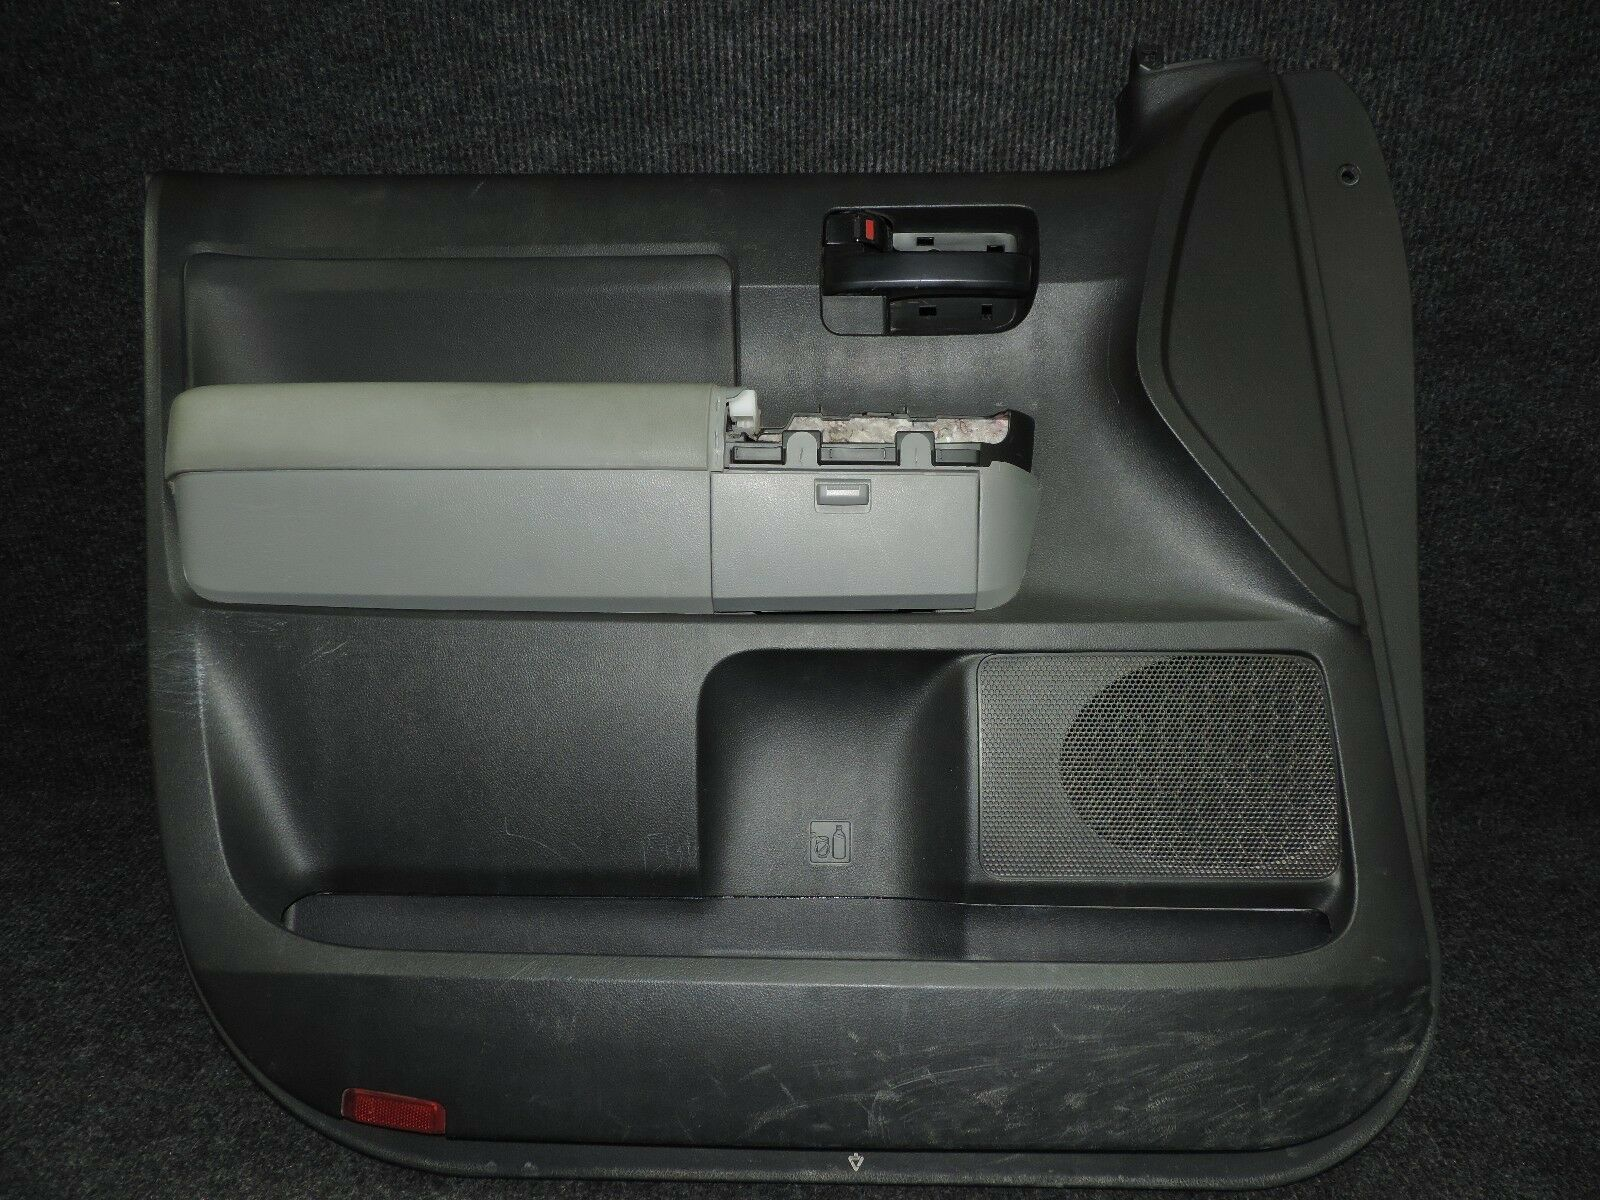 Used Toyota Tundra Interior Door Panels And Parts For Sale 2004 Sequoia Diagram 2007 2013 Double Cab Oem Black Driver Left Hand Front Panel